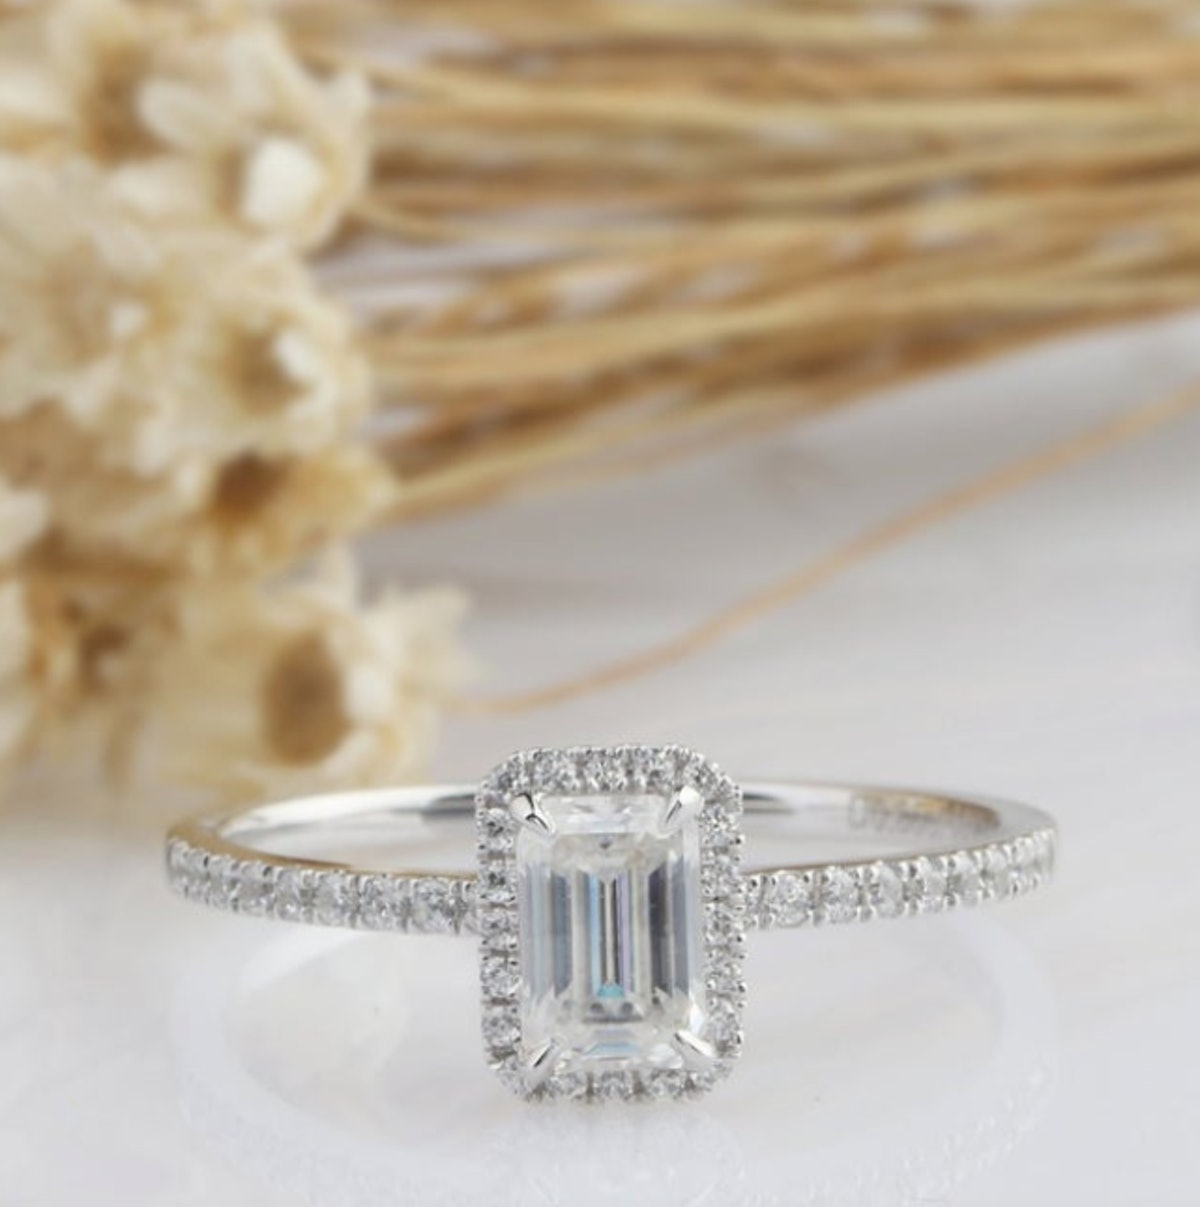 14K Solid Gold Ring/ 0.85CT Emerald Cut Simulated Diamond Wedding Ring/ Moissanite Engagement Ring/ Halo Anniversary Ring/ White Gold Ring